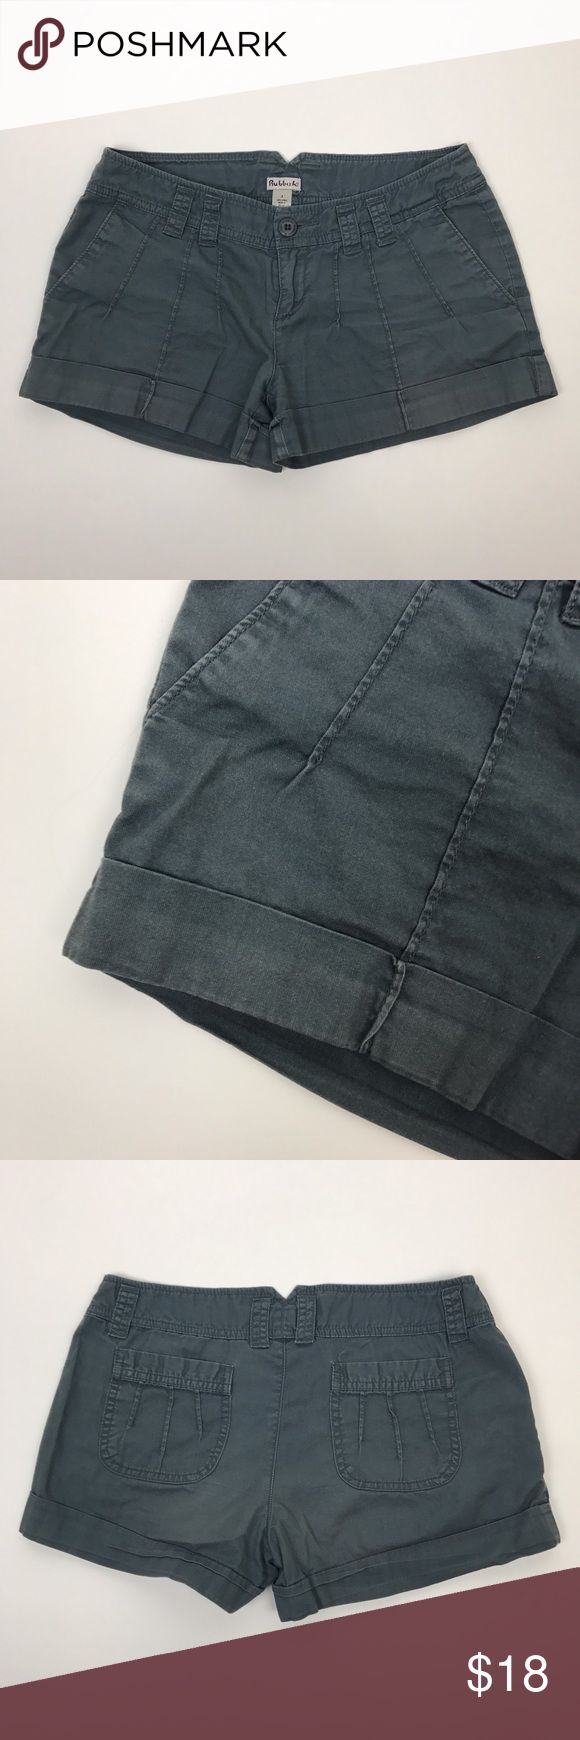 """[Rubbish] Cuffed Military Shorts Twill Soft Casual Casual cool shorts by Rubbish from Nordstrom. Zip fly with button closure. Pleat detailing with cuffed hem. Lightweight. A pretty grayish green color.  🔹Waist: 14.5"""" Lying Flat Across Top 🔹Rise: 7"""" 🔹Inseam: 3"""" 🔹Condition: Good pre-owned condition.   *W19 Rubbish Shorts"""